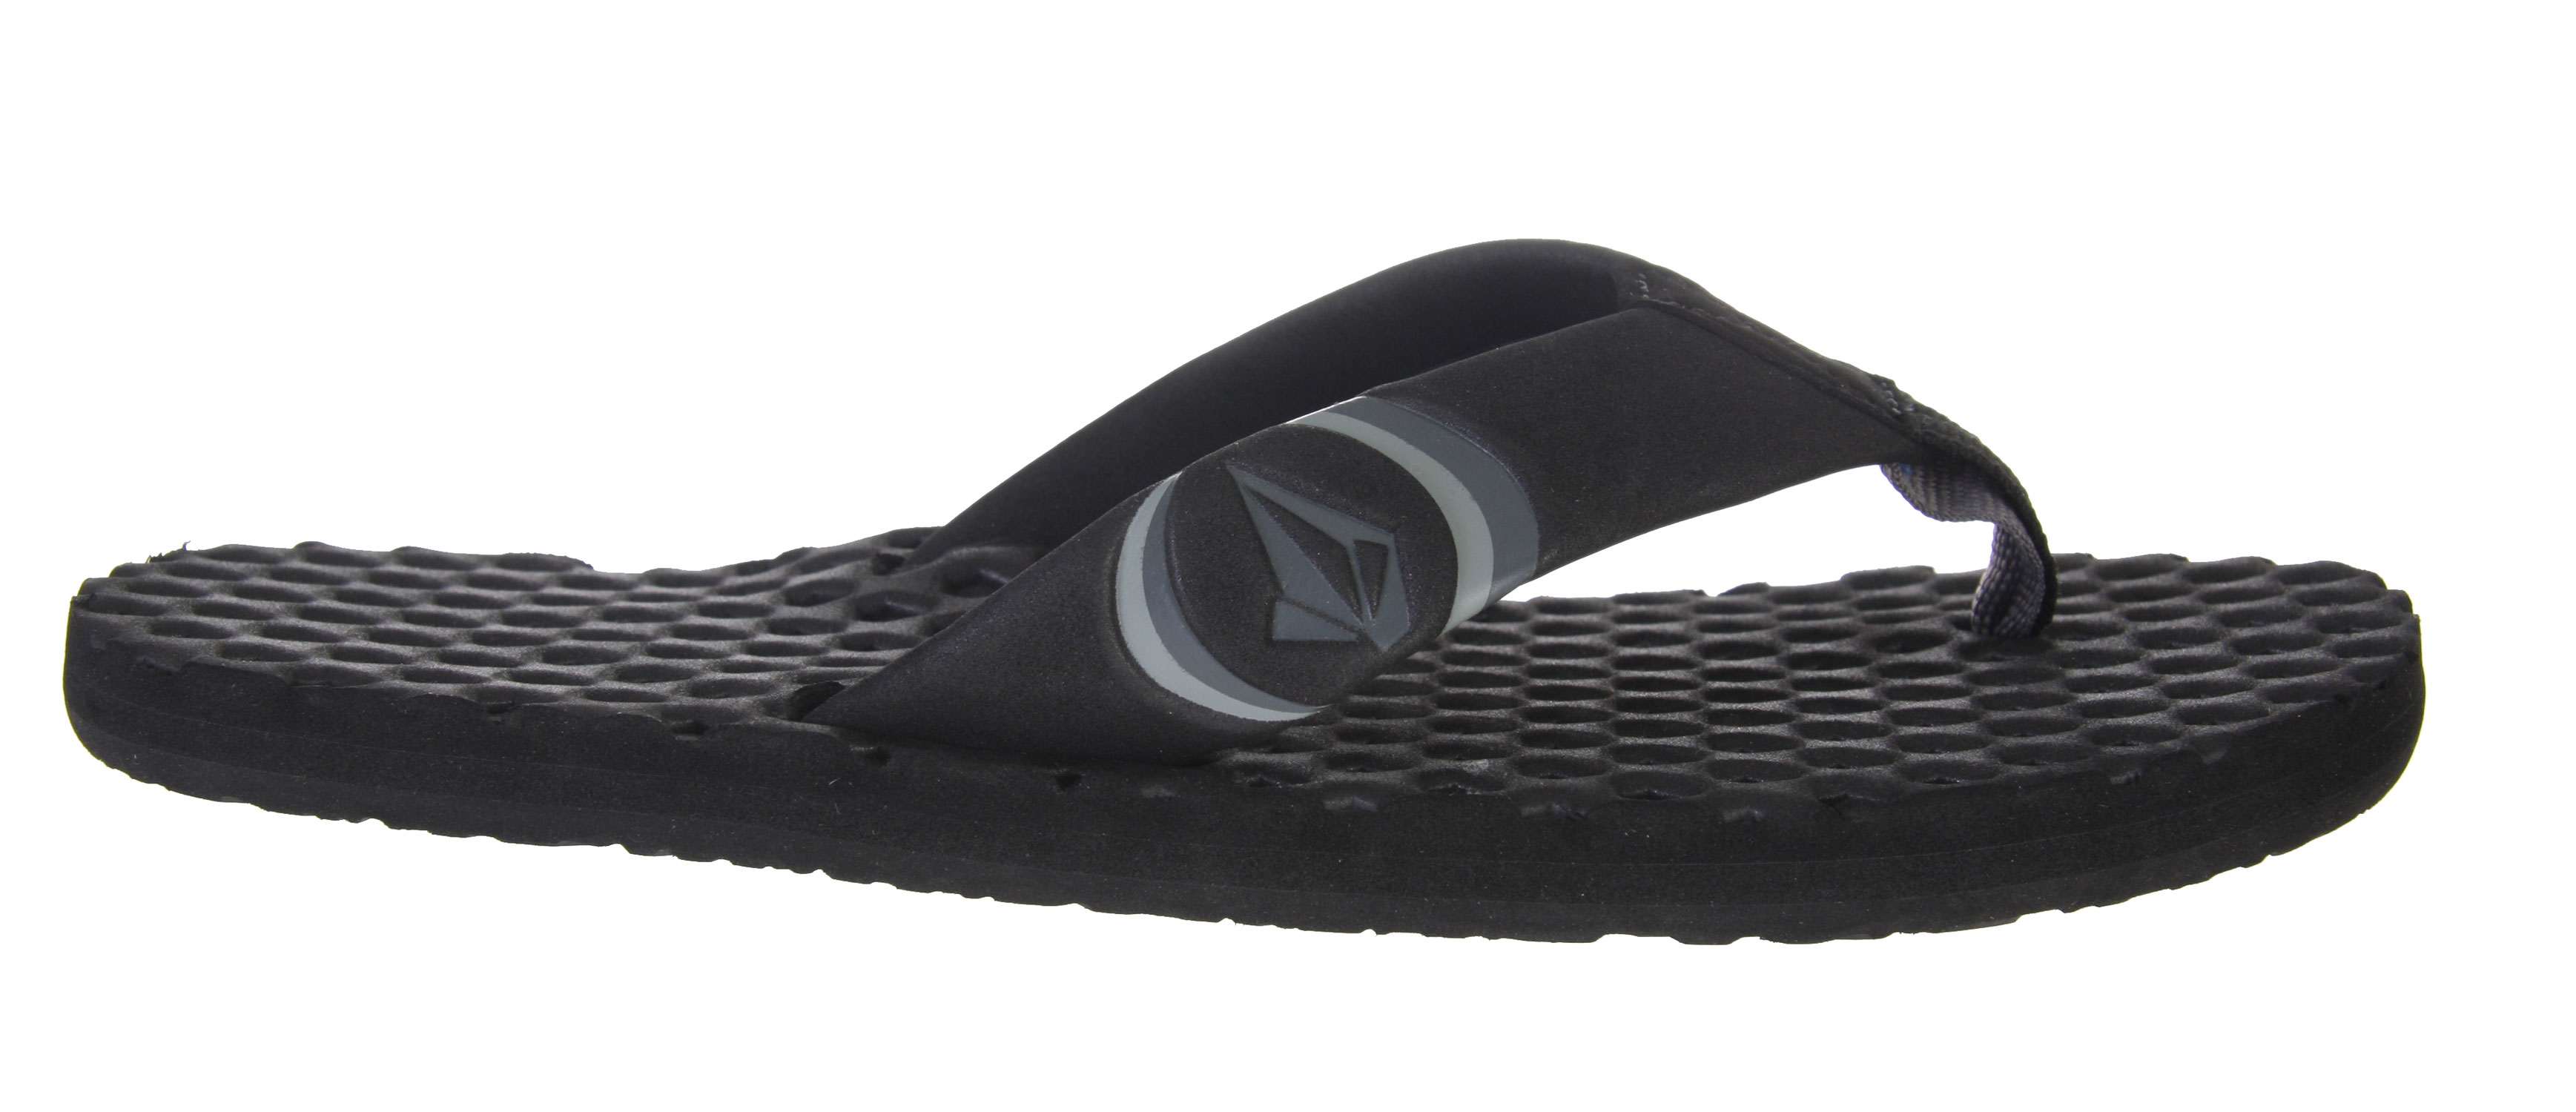 "Surf Skip the hype of high priced sandals and choose the free-wheeling style that Volcom is known for. Volcom Decompression Creedlers sandals prove the principle that every Volcom product bears the stamp of founders ""Wooly"" and ""T-Dog"". Radical for their understated chic, Decompression Creedlers boast the iconic Volcom emblem. Engineered for comfort, Decompression sandals sport malleable EVA material throughout, from toe strap to foot-bed and molded outersole, resulting in a sandal that will leave your feet feeling stoked.Key Features of the Volcom Decompression Creedlers Sandals: EVA toe strap with embossing and enamel Unique waffle texture EVA footbed Molded EVA outsole - $18.95"